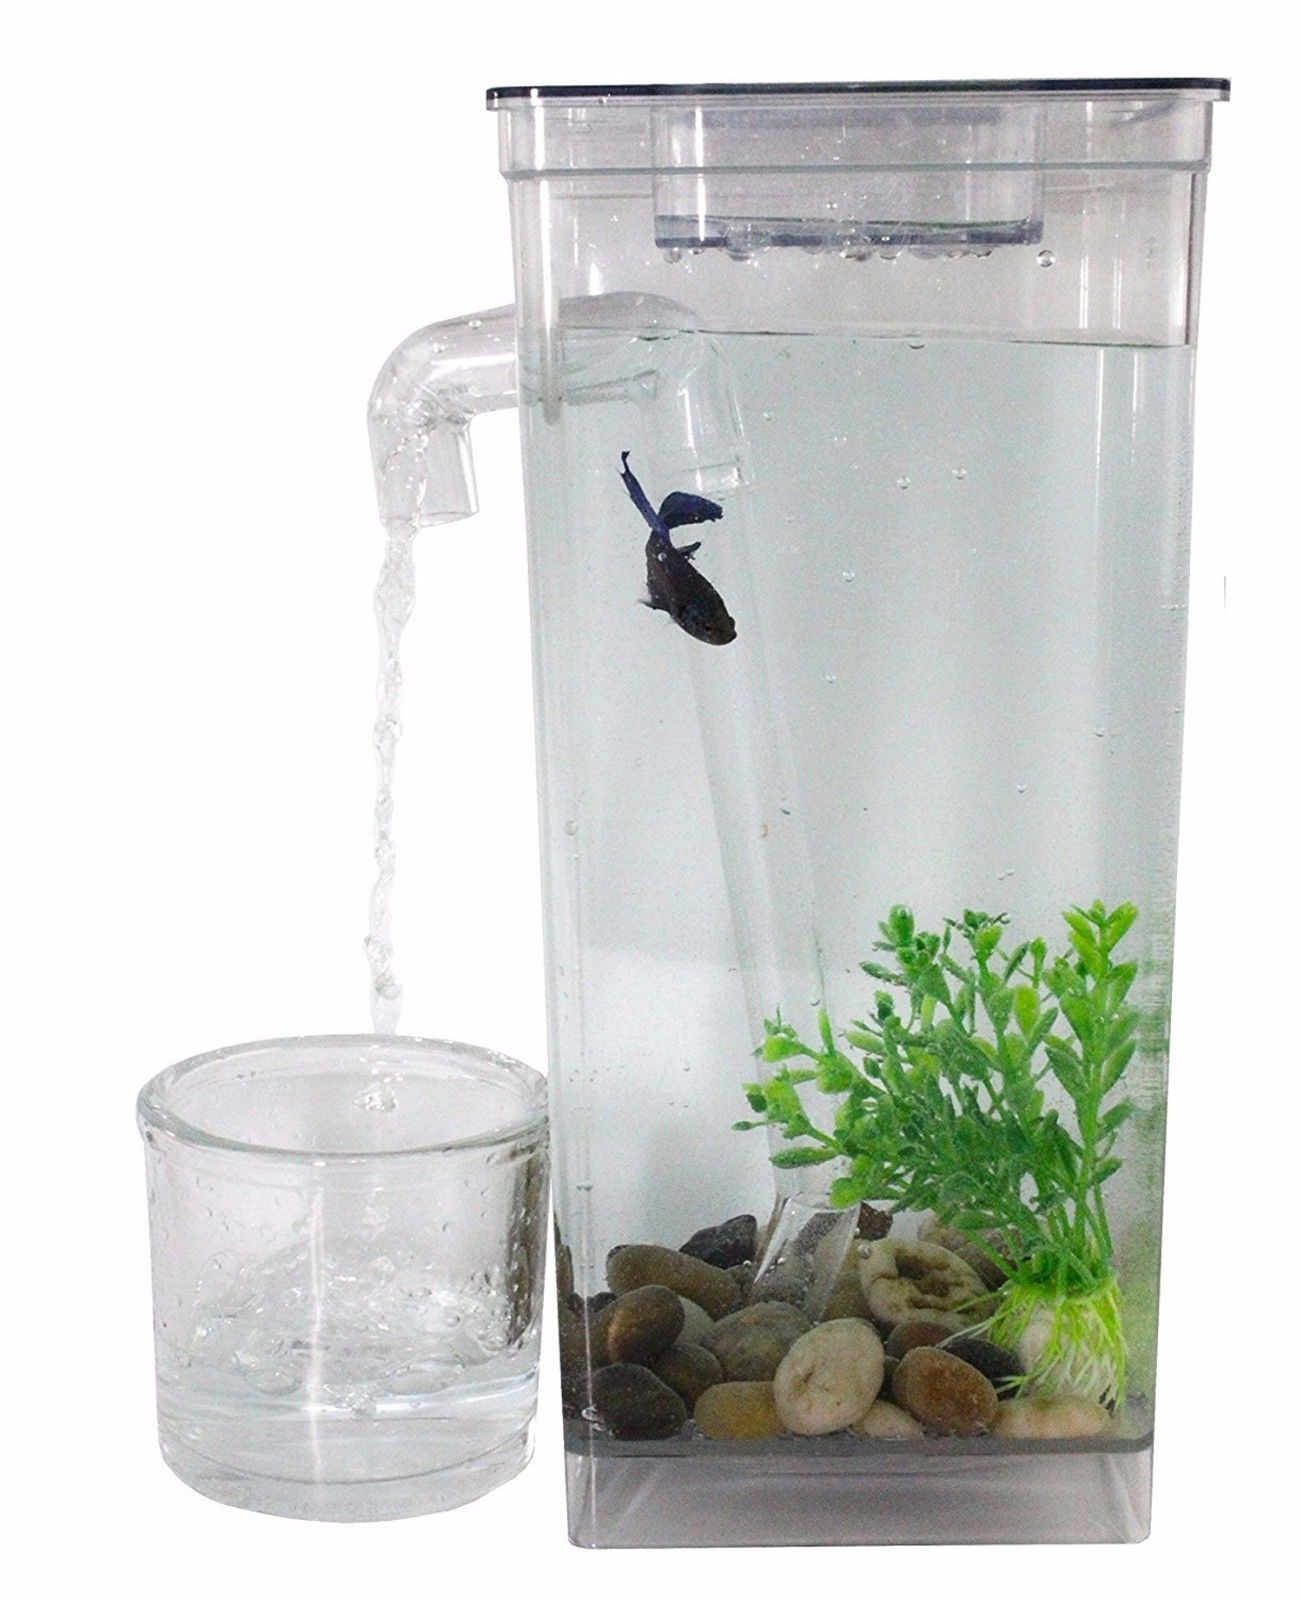 Small Fish Tanks Self cleaning fish tank, Cleaning fish